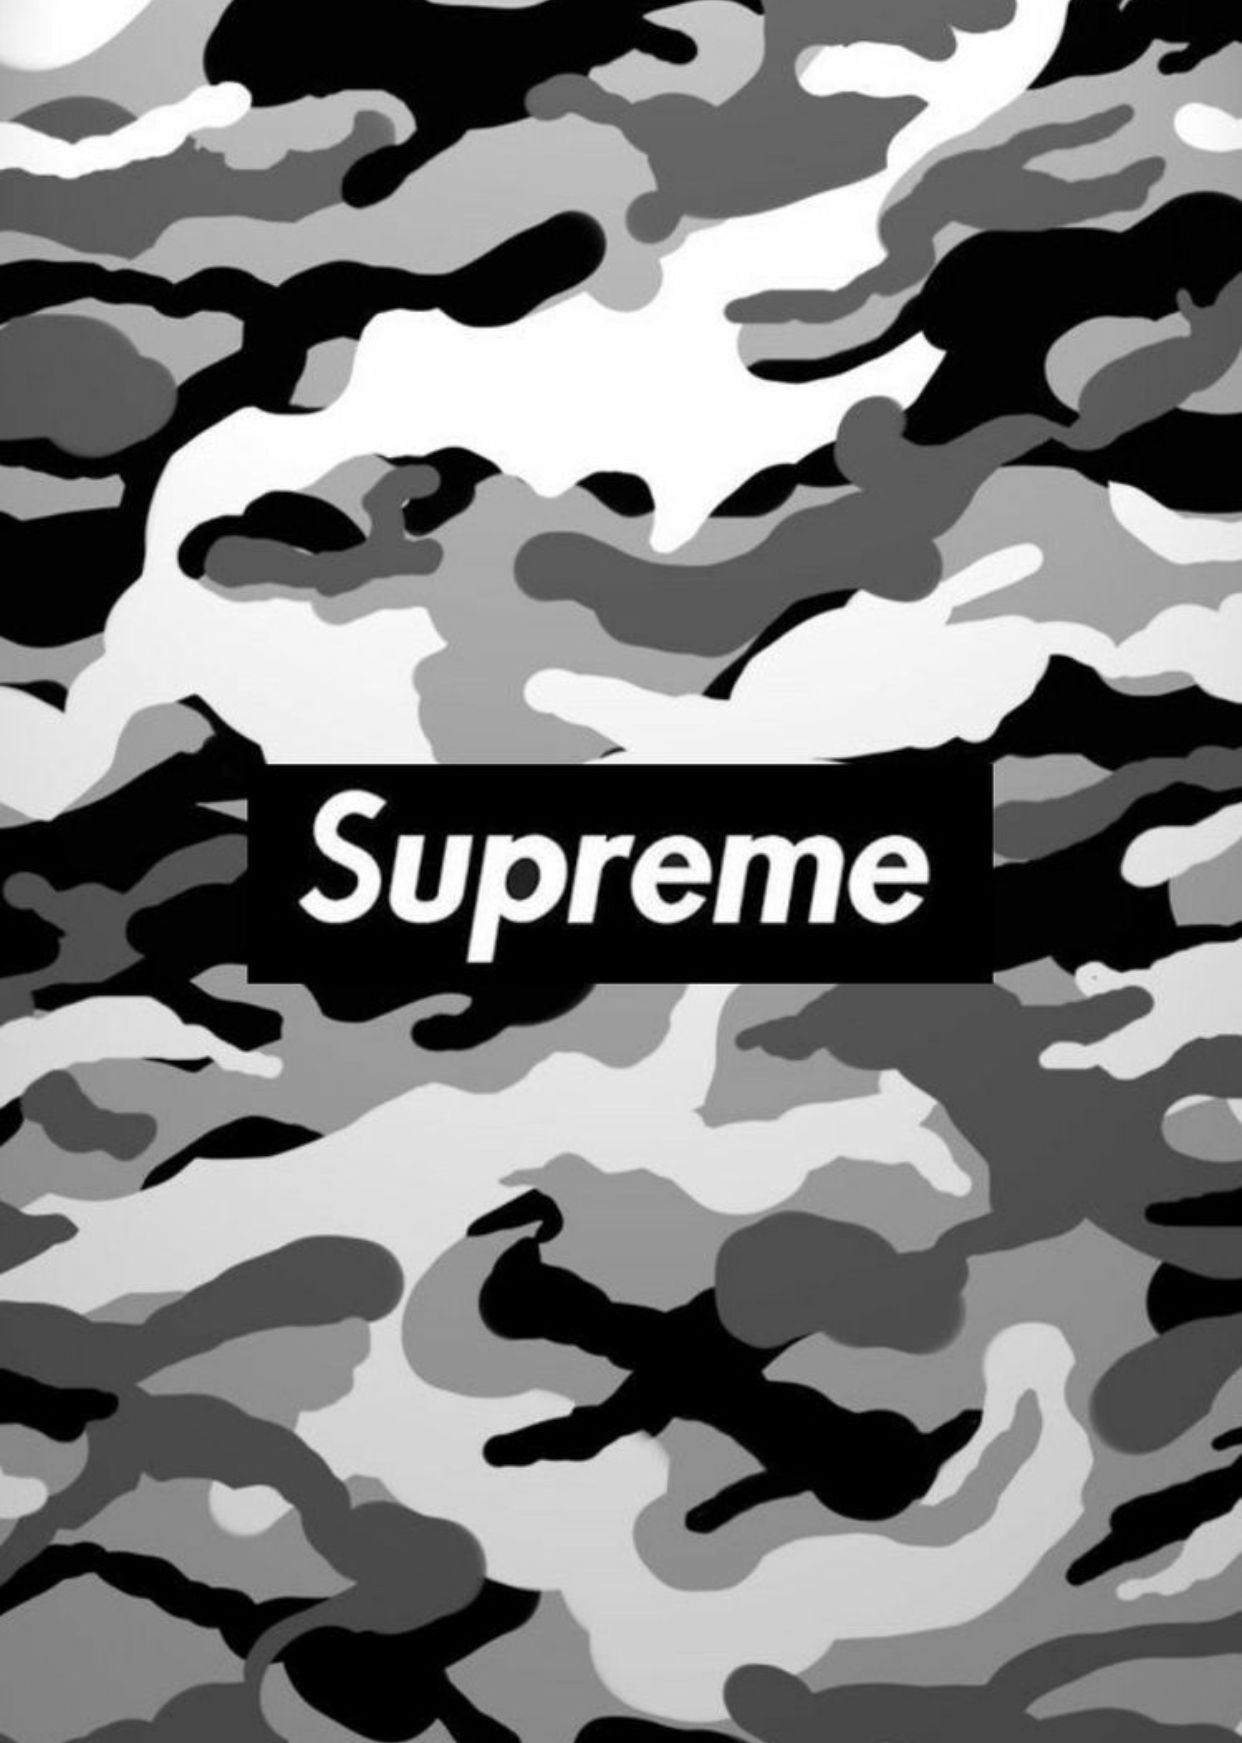 Pin By Chris Fernandez On Wallpapers Supreme Wallpaper Supreme Wallpaper Hd Supreme Art